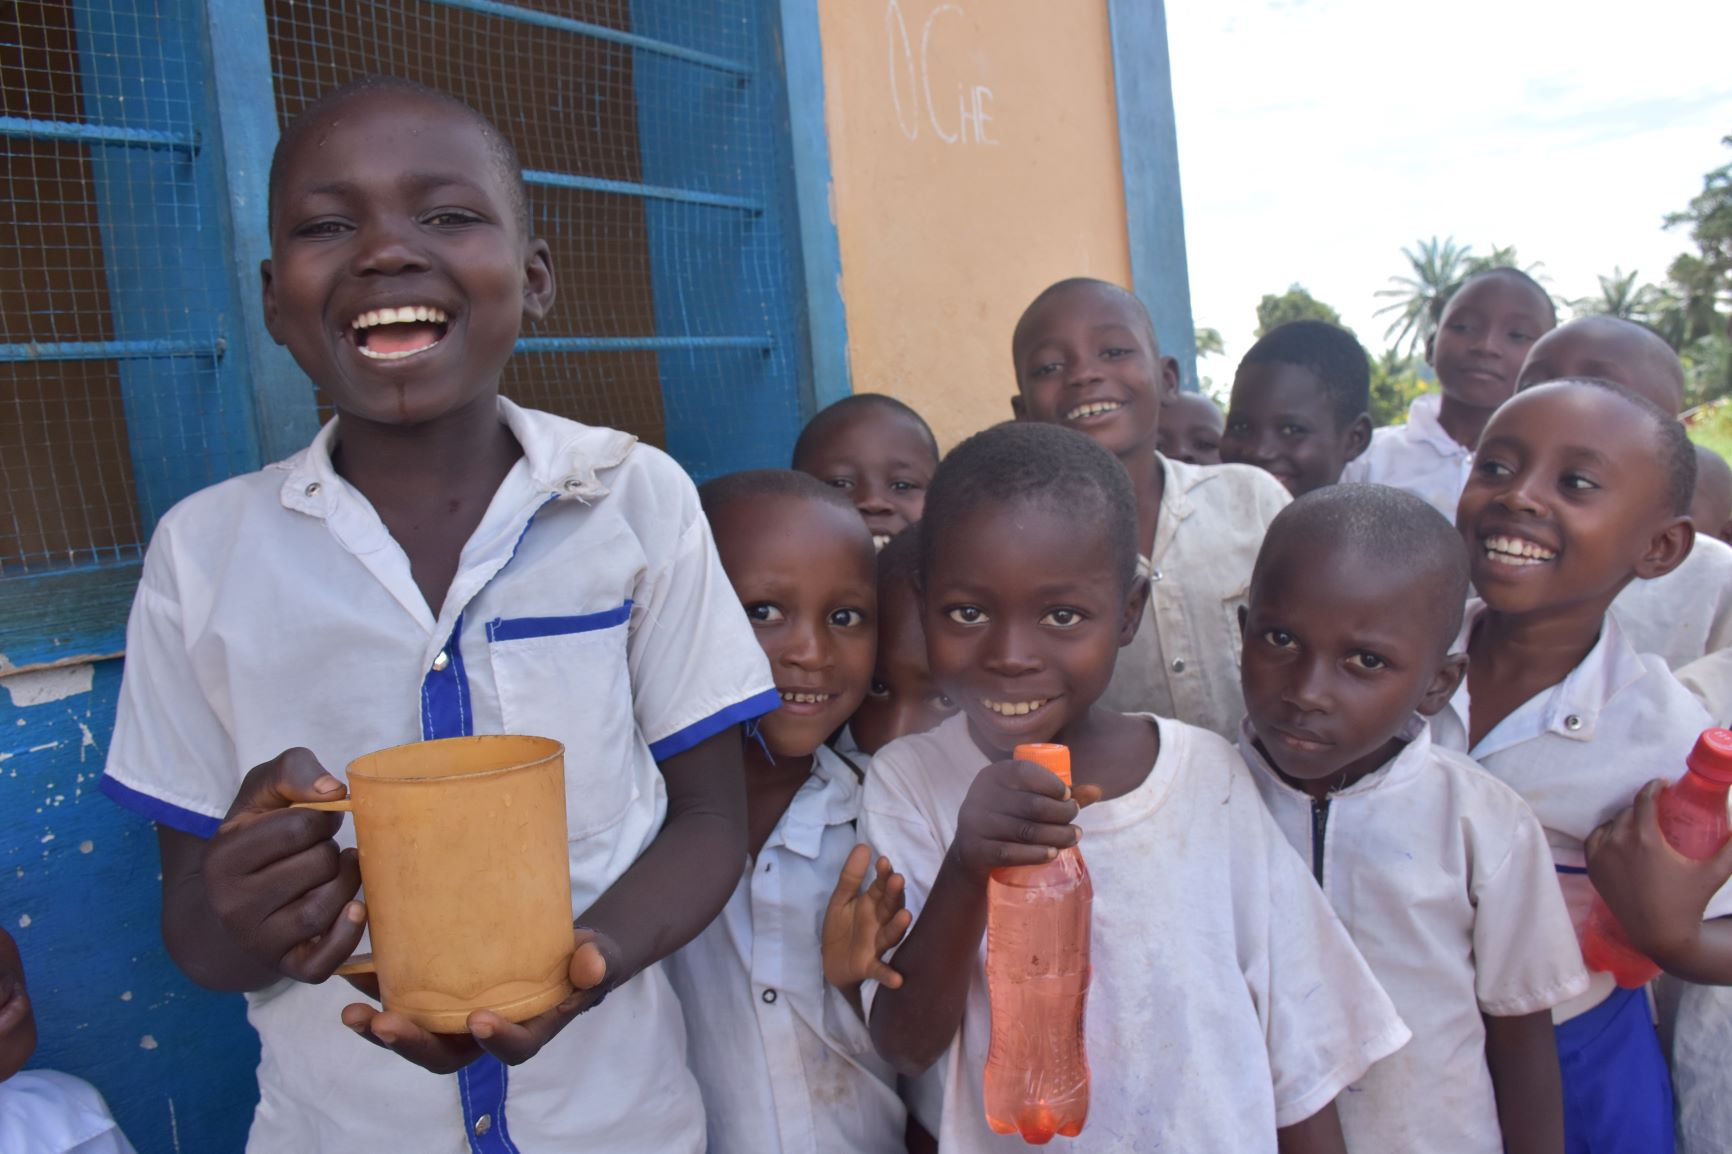 Photo Martine in their school holding a water cup